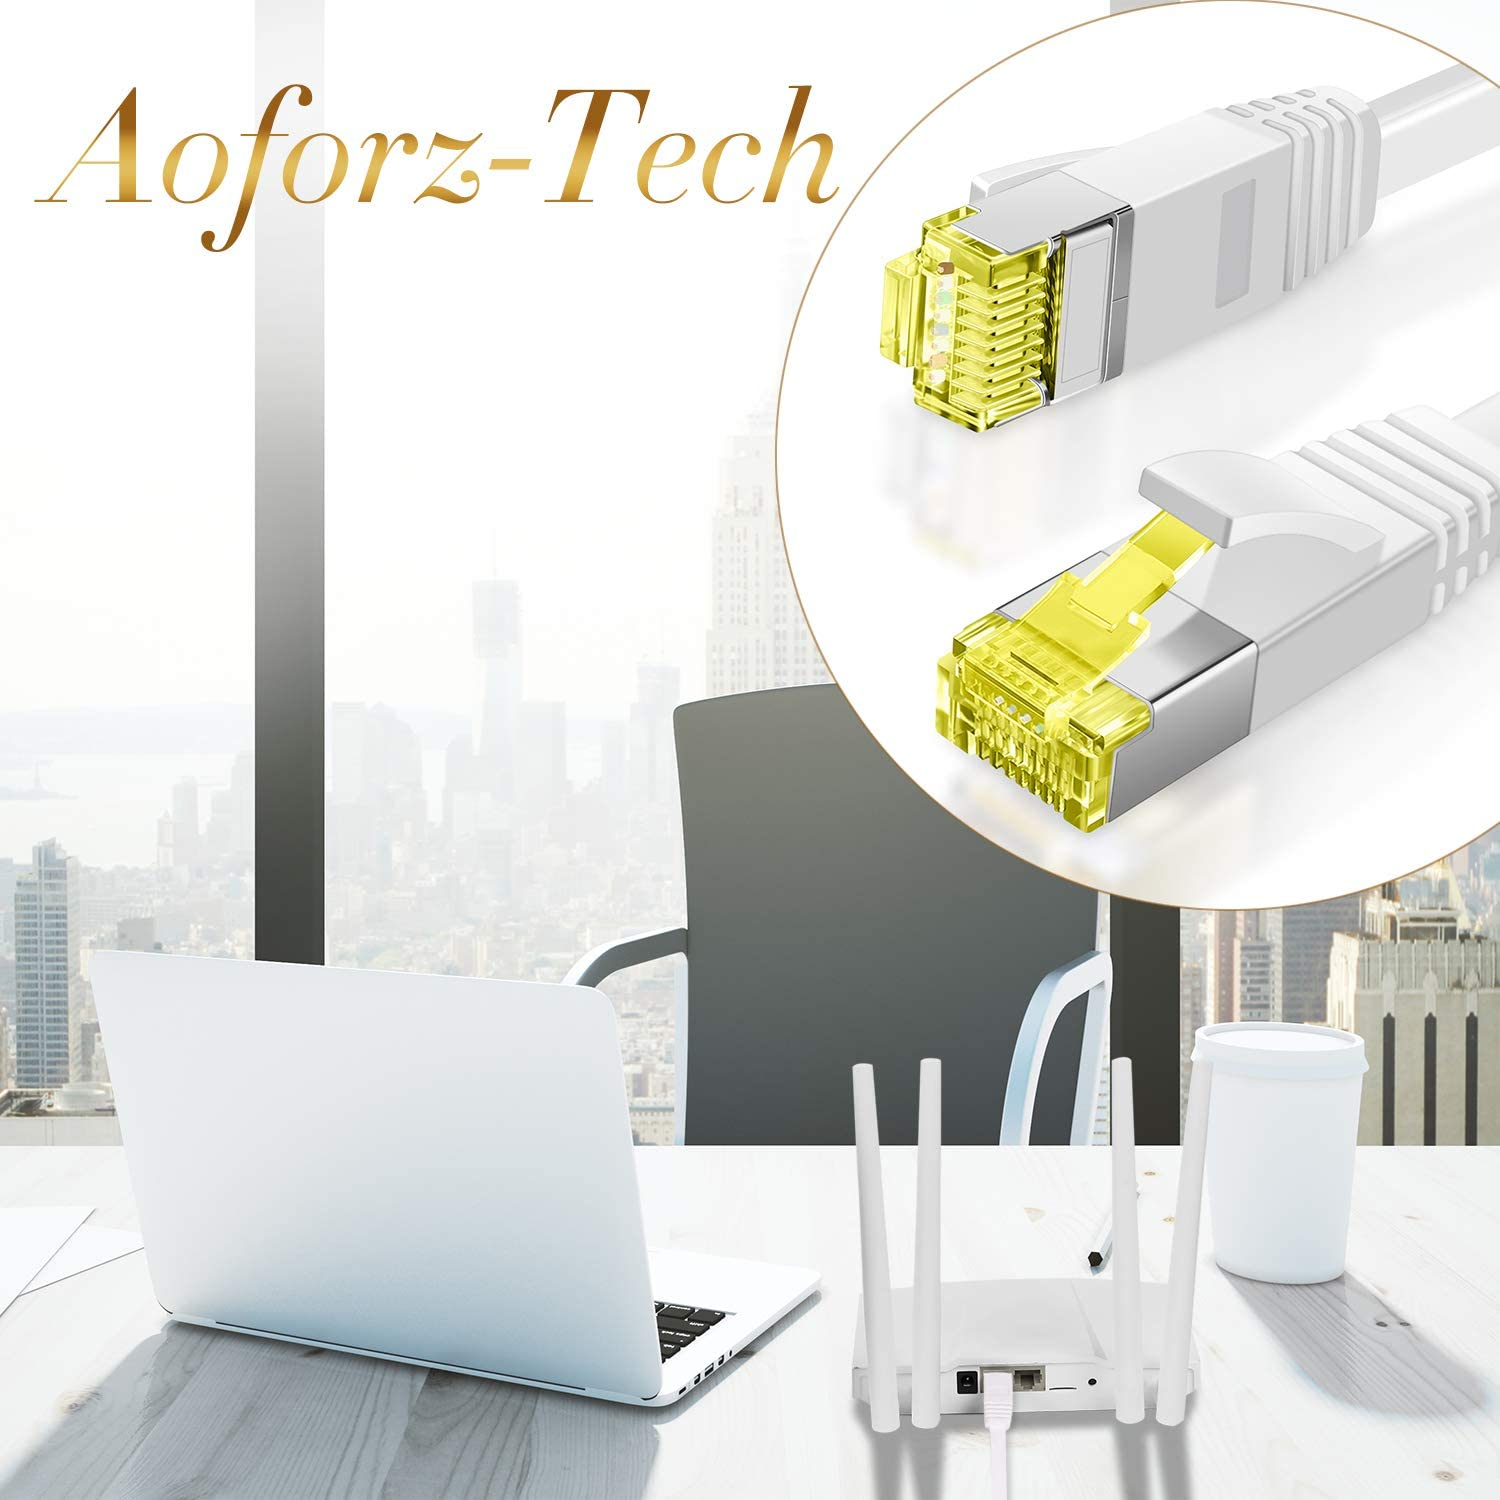 AoforzTech Ethernet Cable Cat6 50ft White Flat High Speed Internet Network Cable Cable Clips 50 feet White Computer Cable Snagless Rj45 Connectors